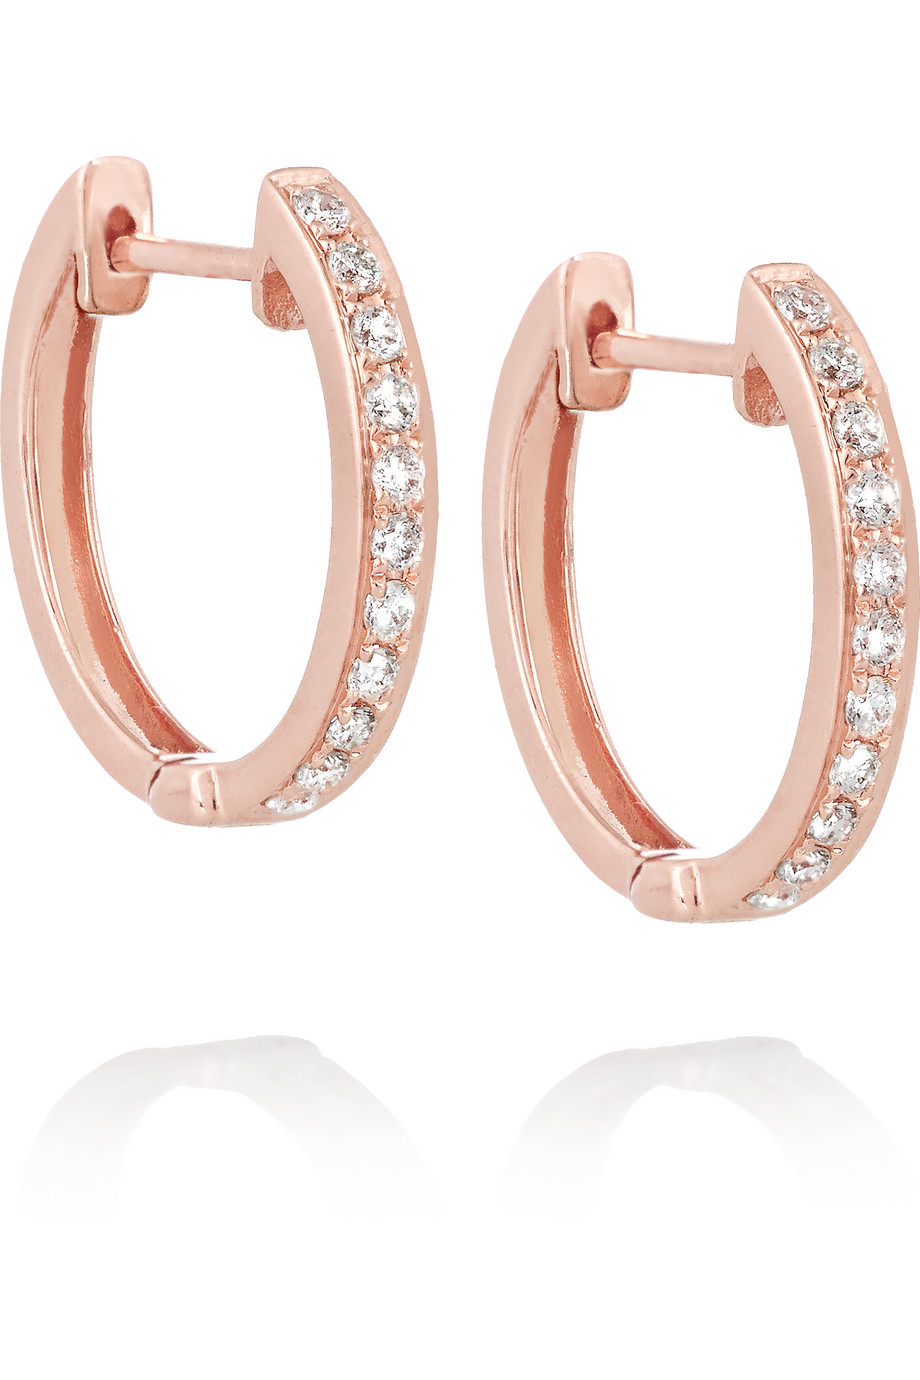 Anita Ko Huggy 18-Karat Rose Gold Diamond Earrings, Women's